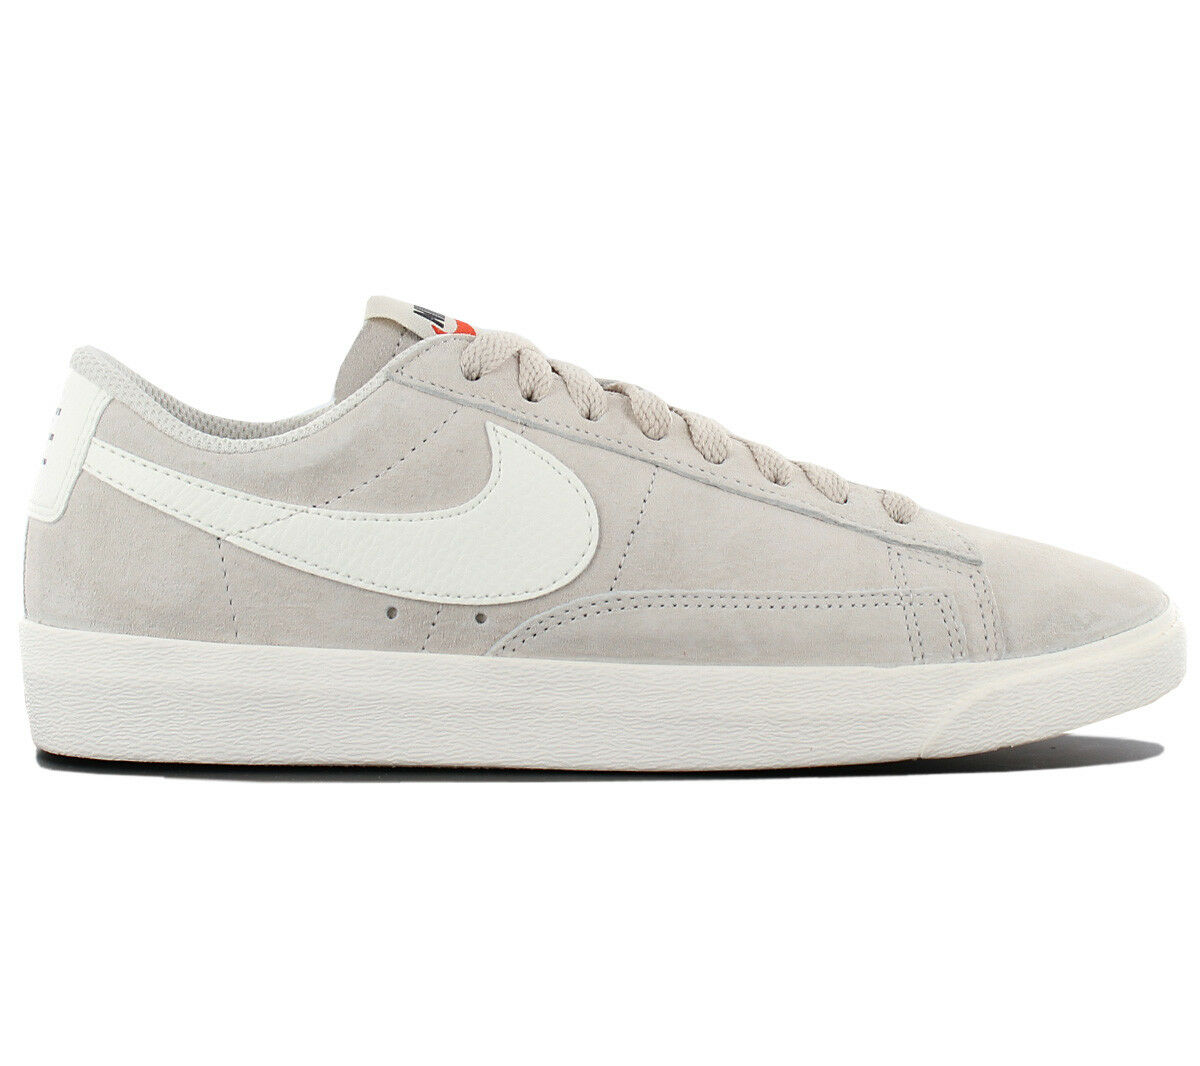 Nike Blazer Low Suede Sd Ladies Sneaker shoes Leather Beige AA3962-005 Trainers